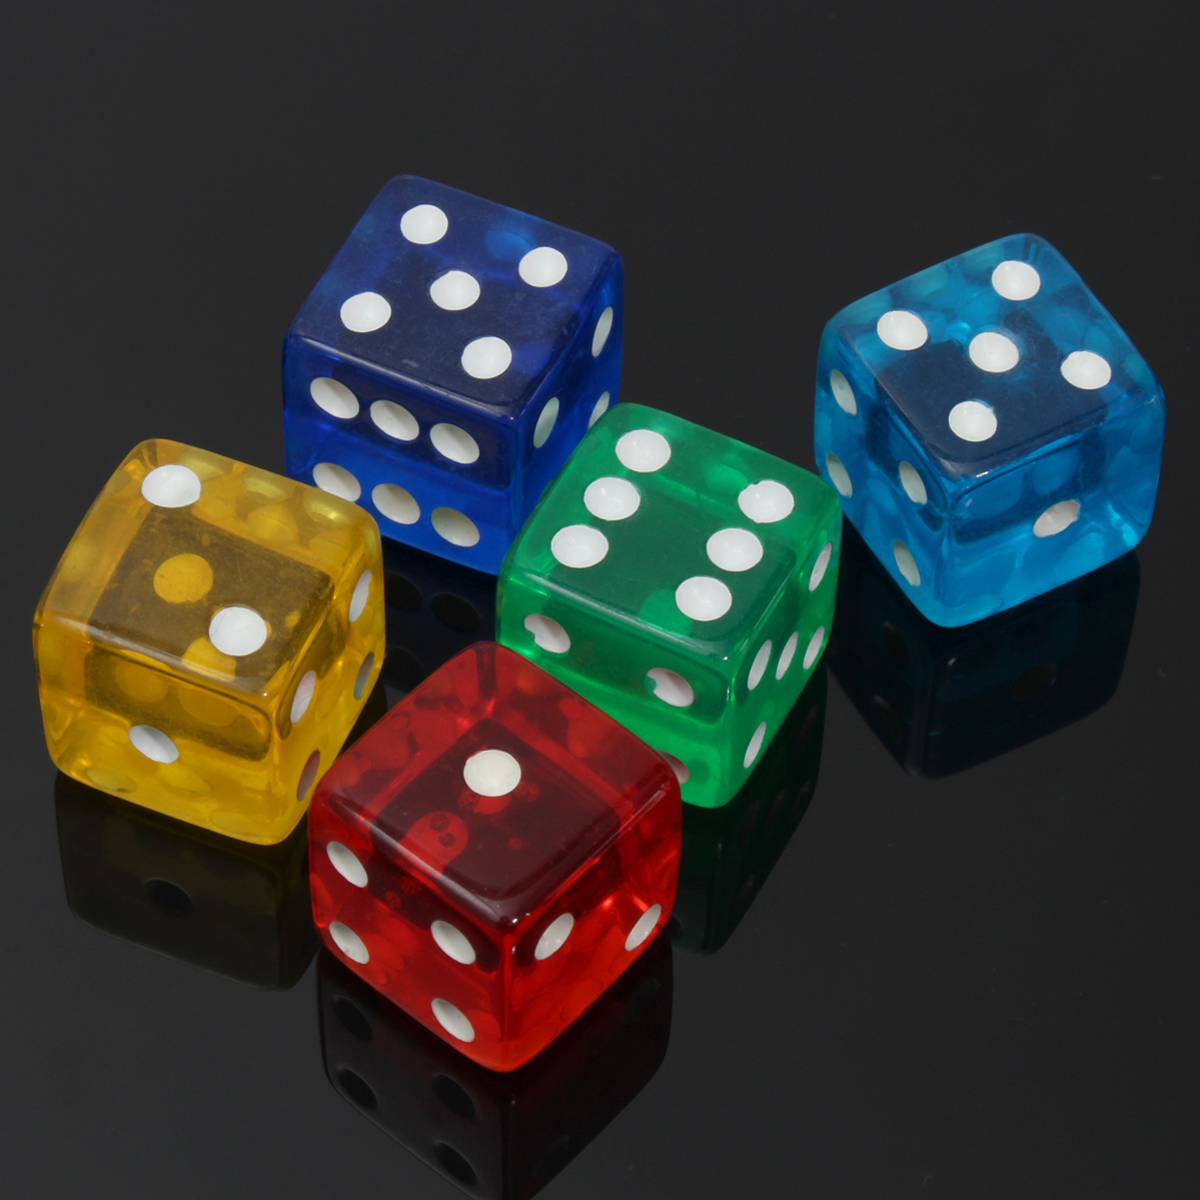 10PCS 19mm Acrylic Gaming Dice Standard Six Sided Die 5 Colors